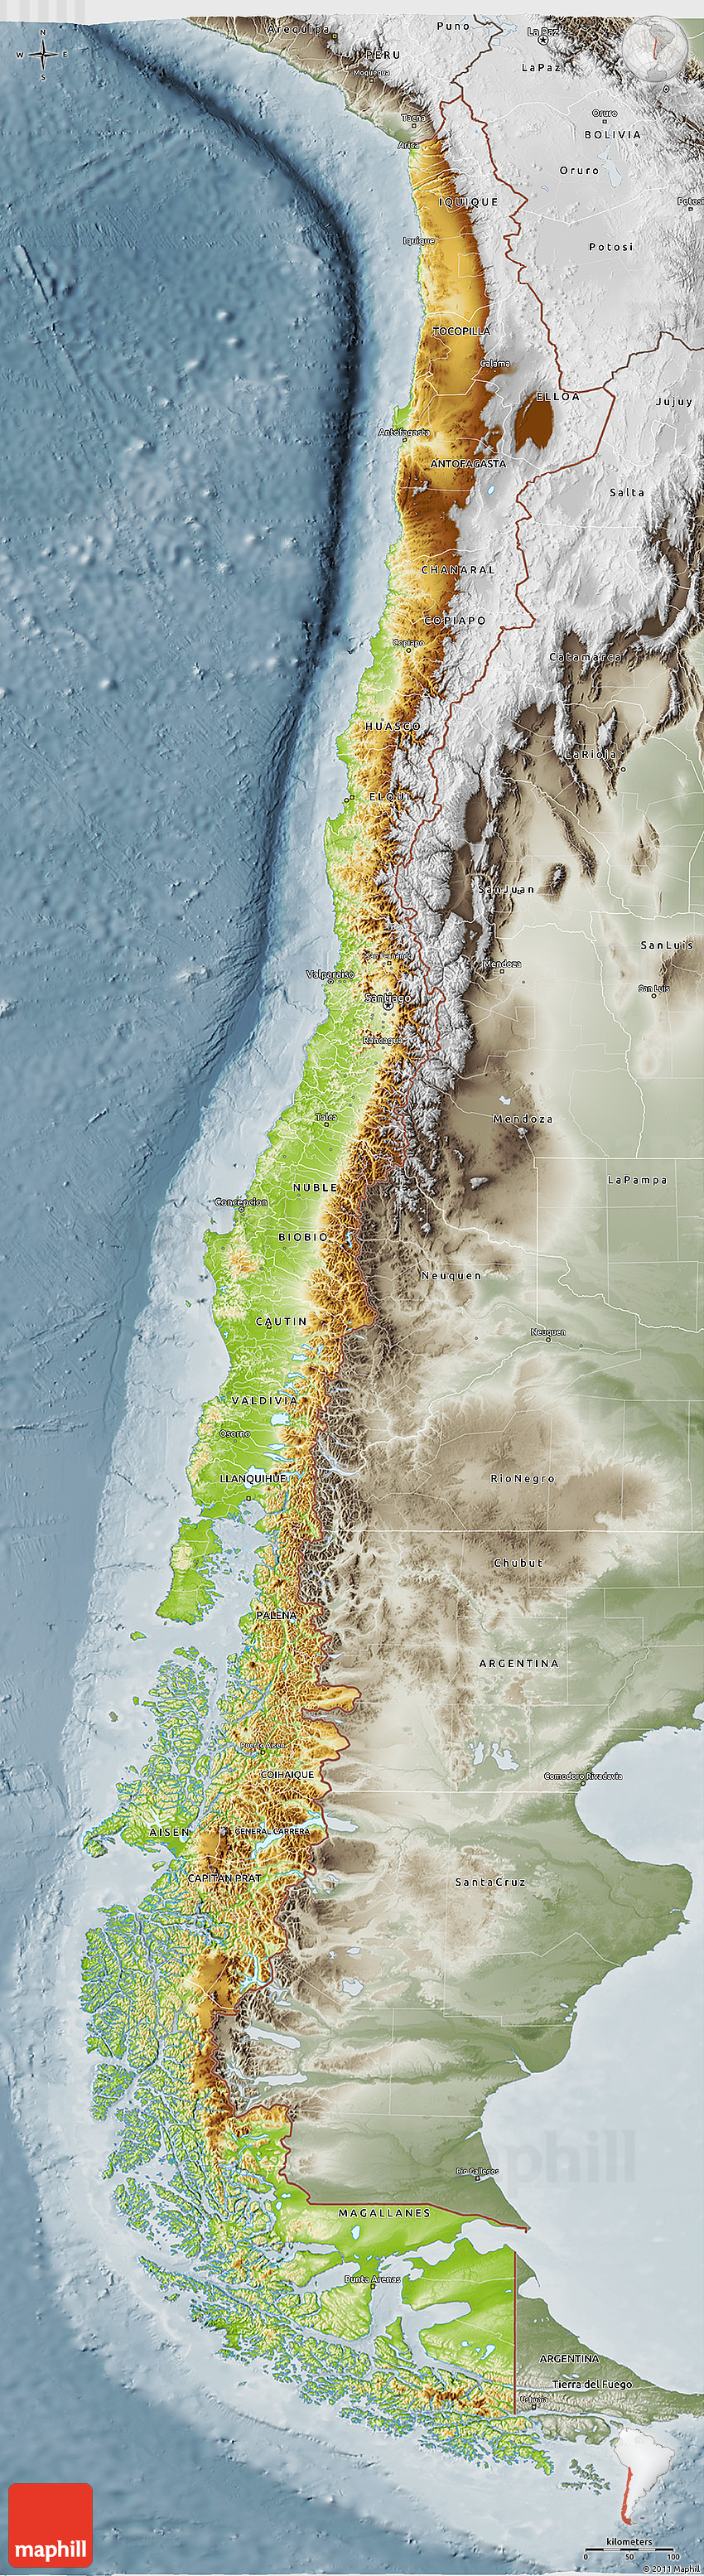 a geography of chile Climate of central chile köppen climate classification the köppen climate classification system is a widely used method for classifying the earth's various climates.